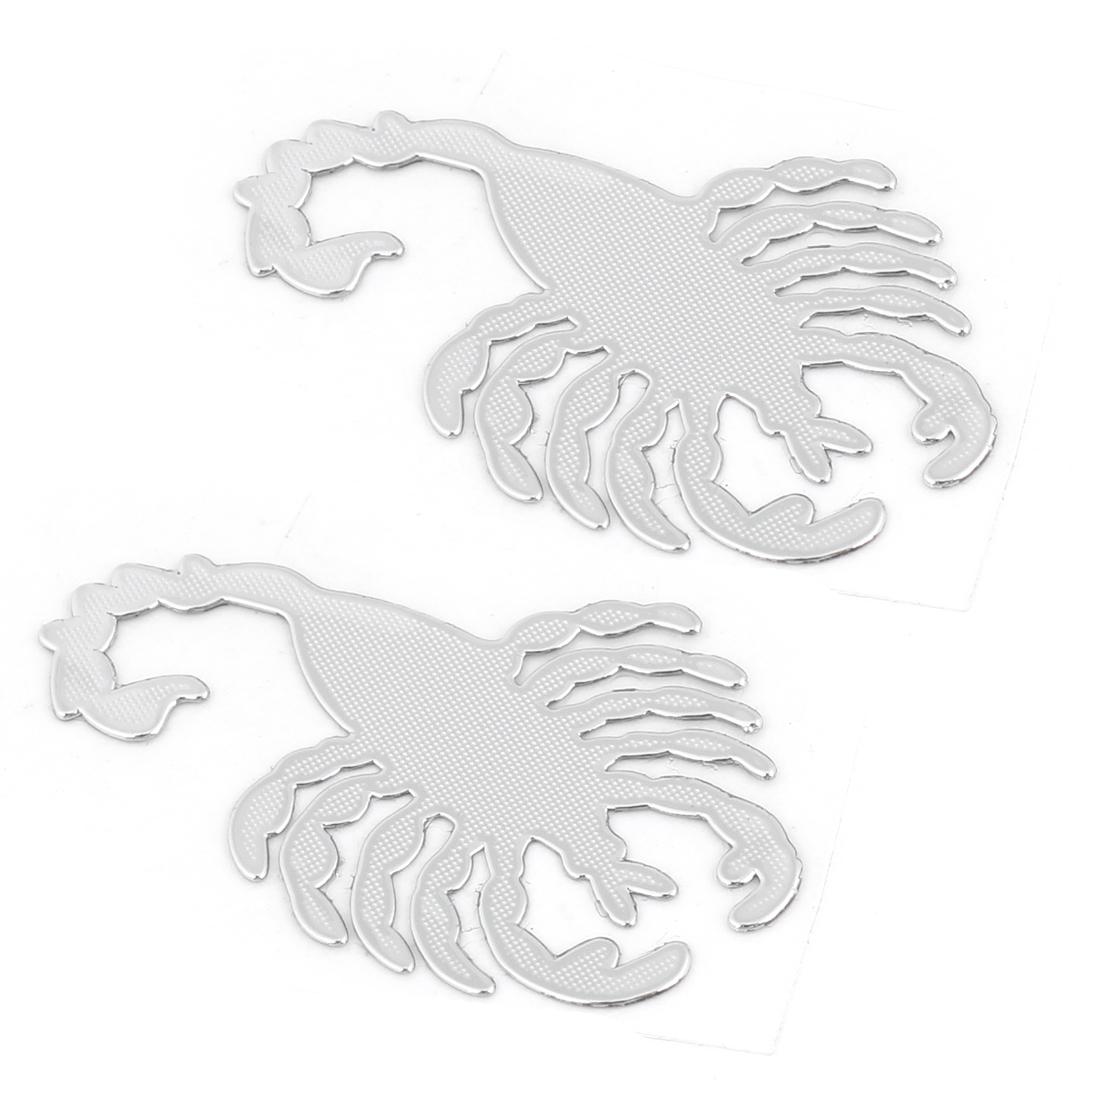 Car Exterior Silver Tone Metal Scorpion Shaped Sticker Badge Emblem Decor 2pcs